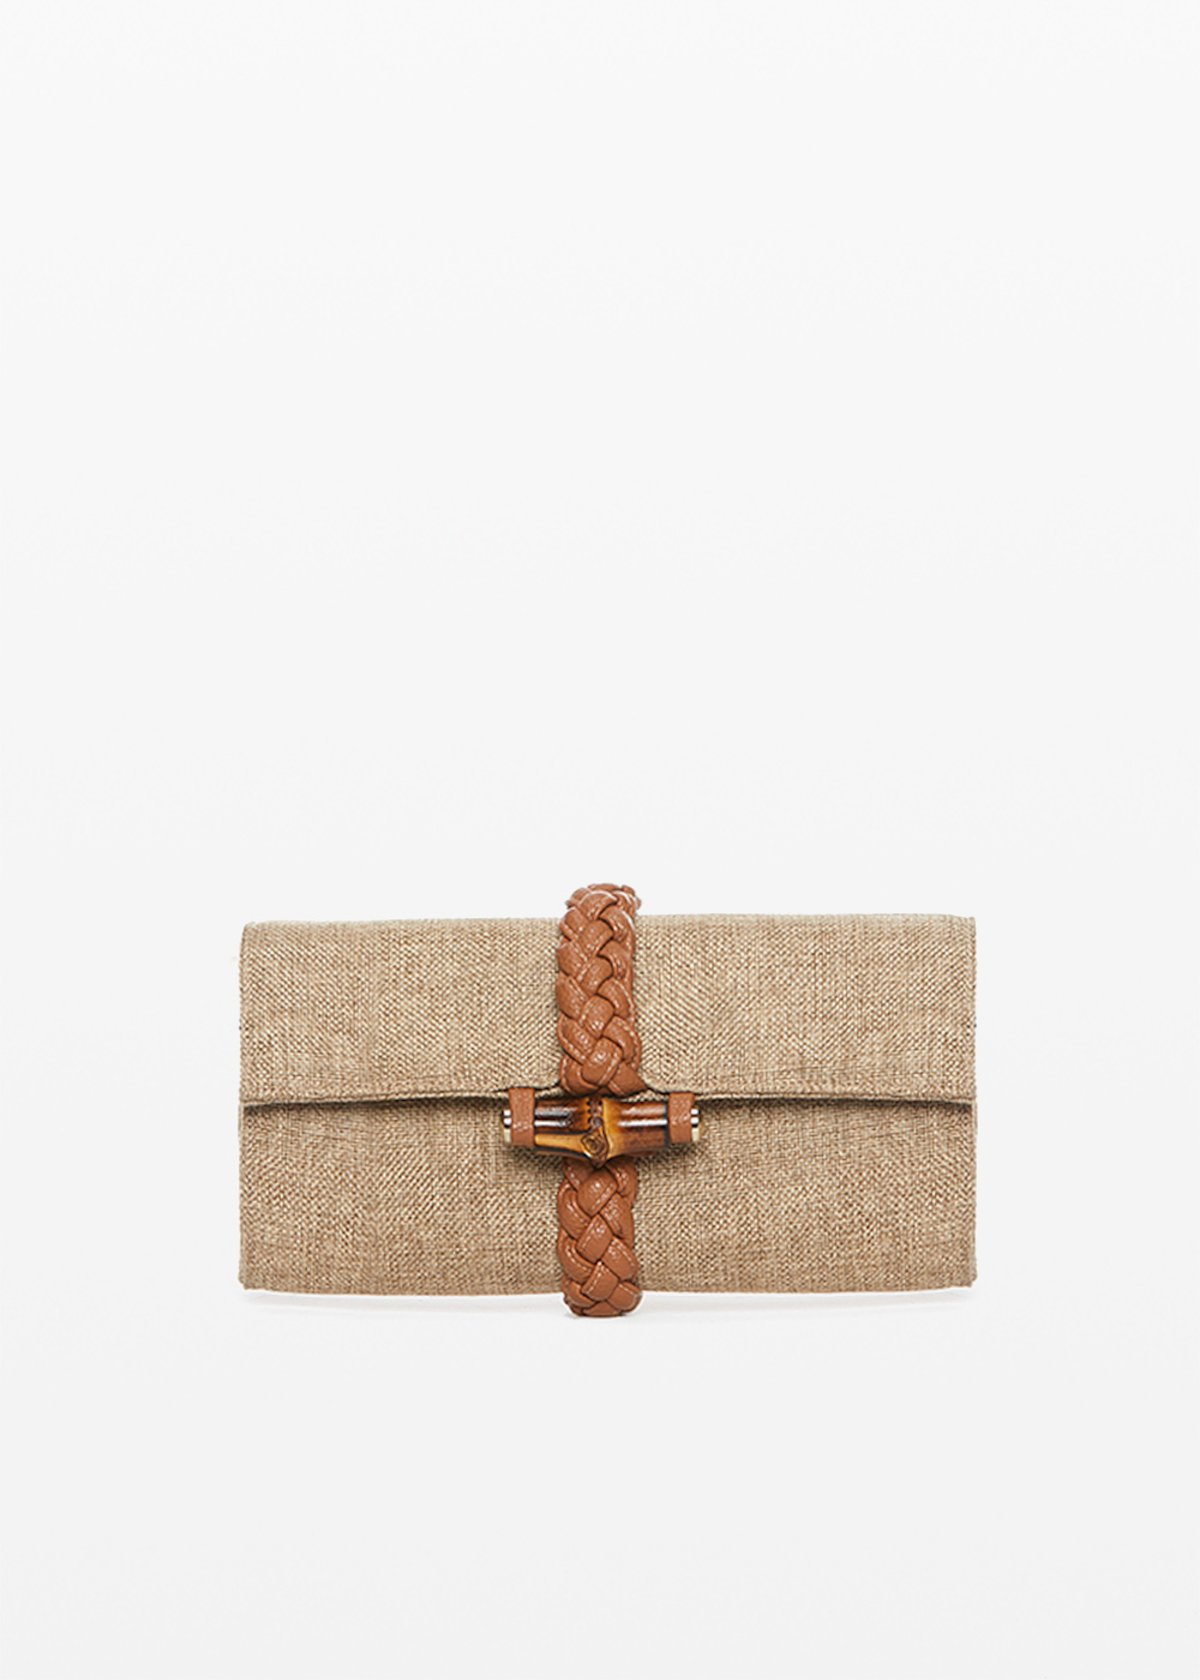 Bard clutch with faux leather braided detail - Desert / Lion - Woman - Category image